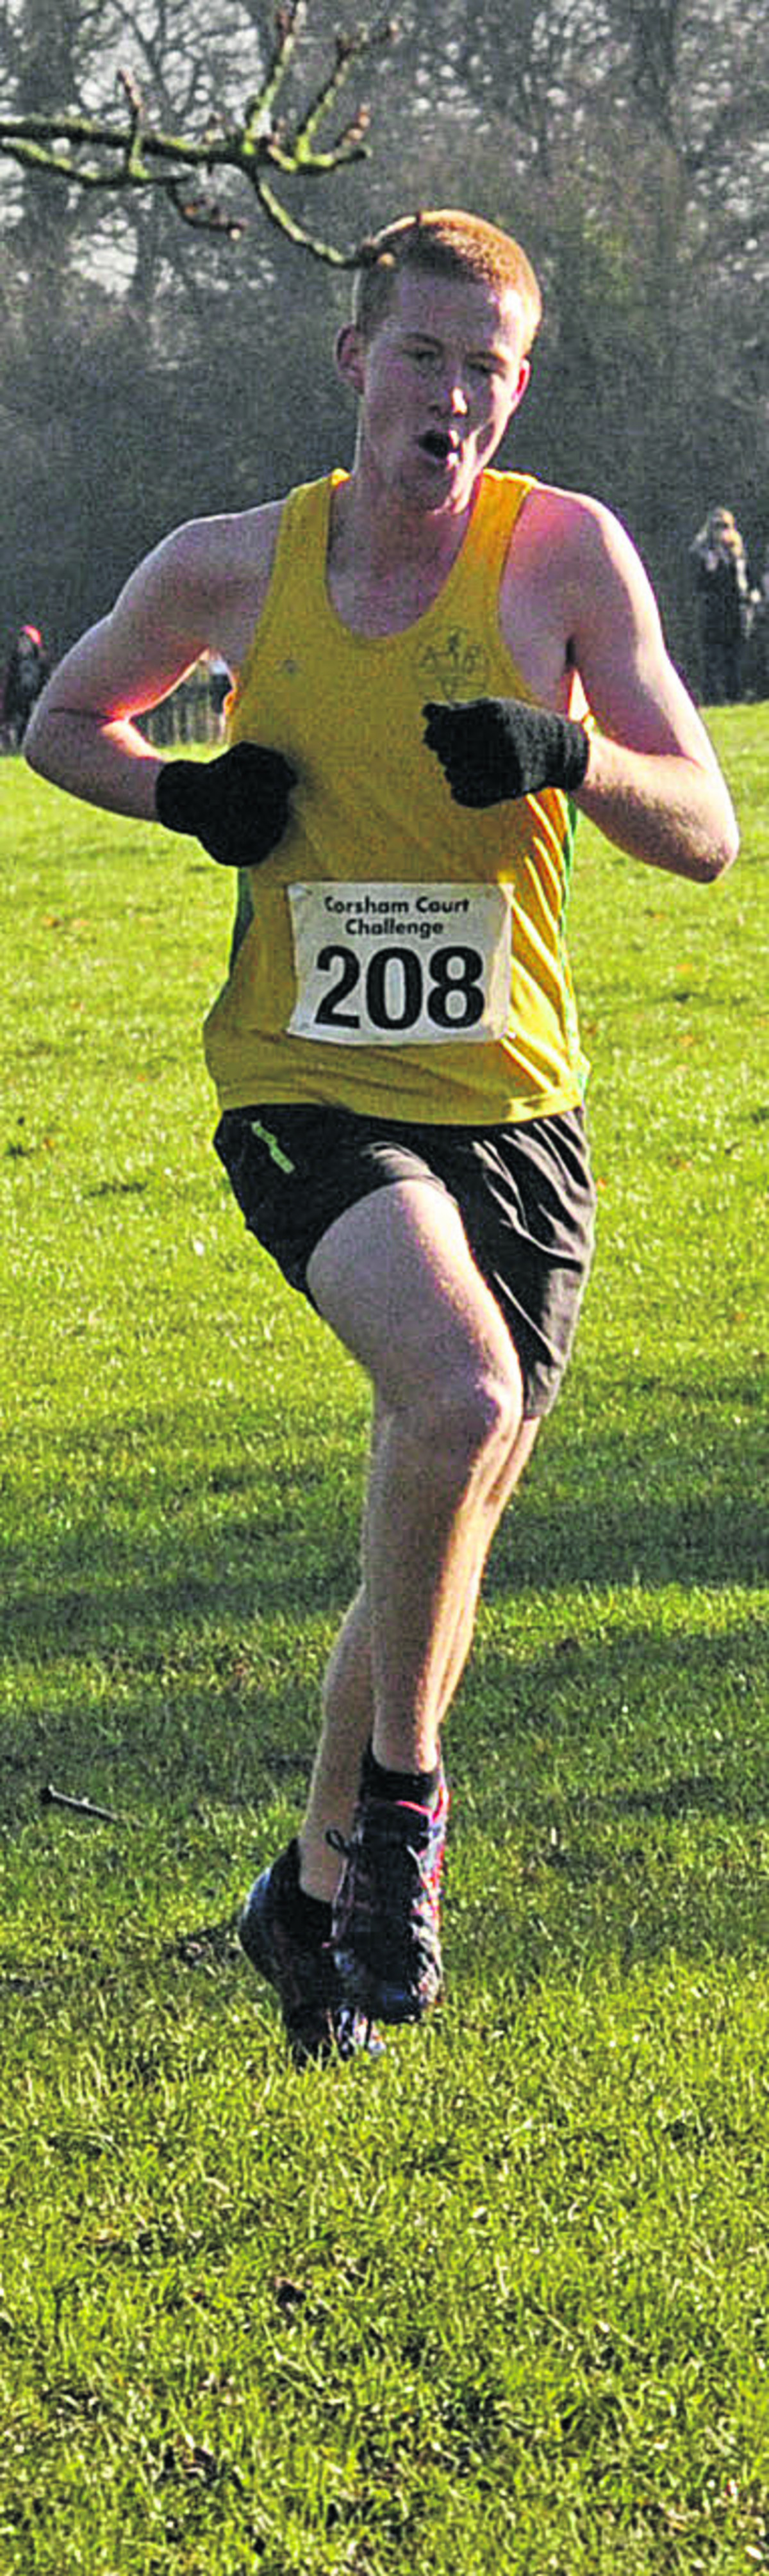 Michael Towler, of Avon Valley Runners, is nominated for male athlete of the year